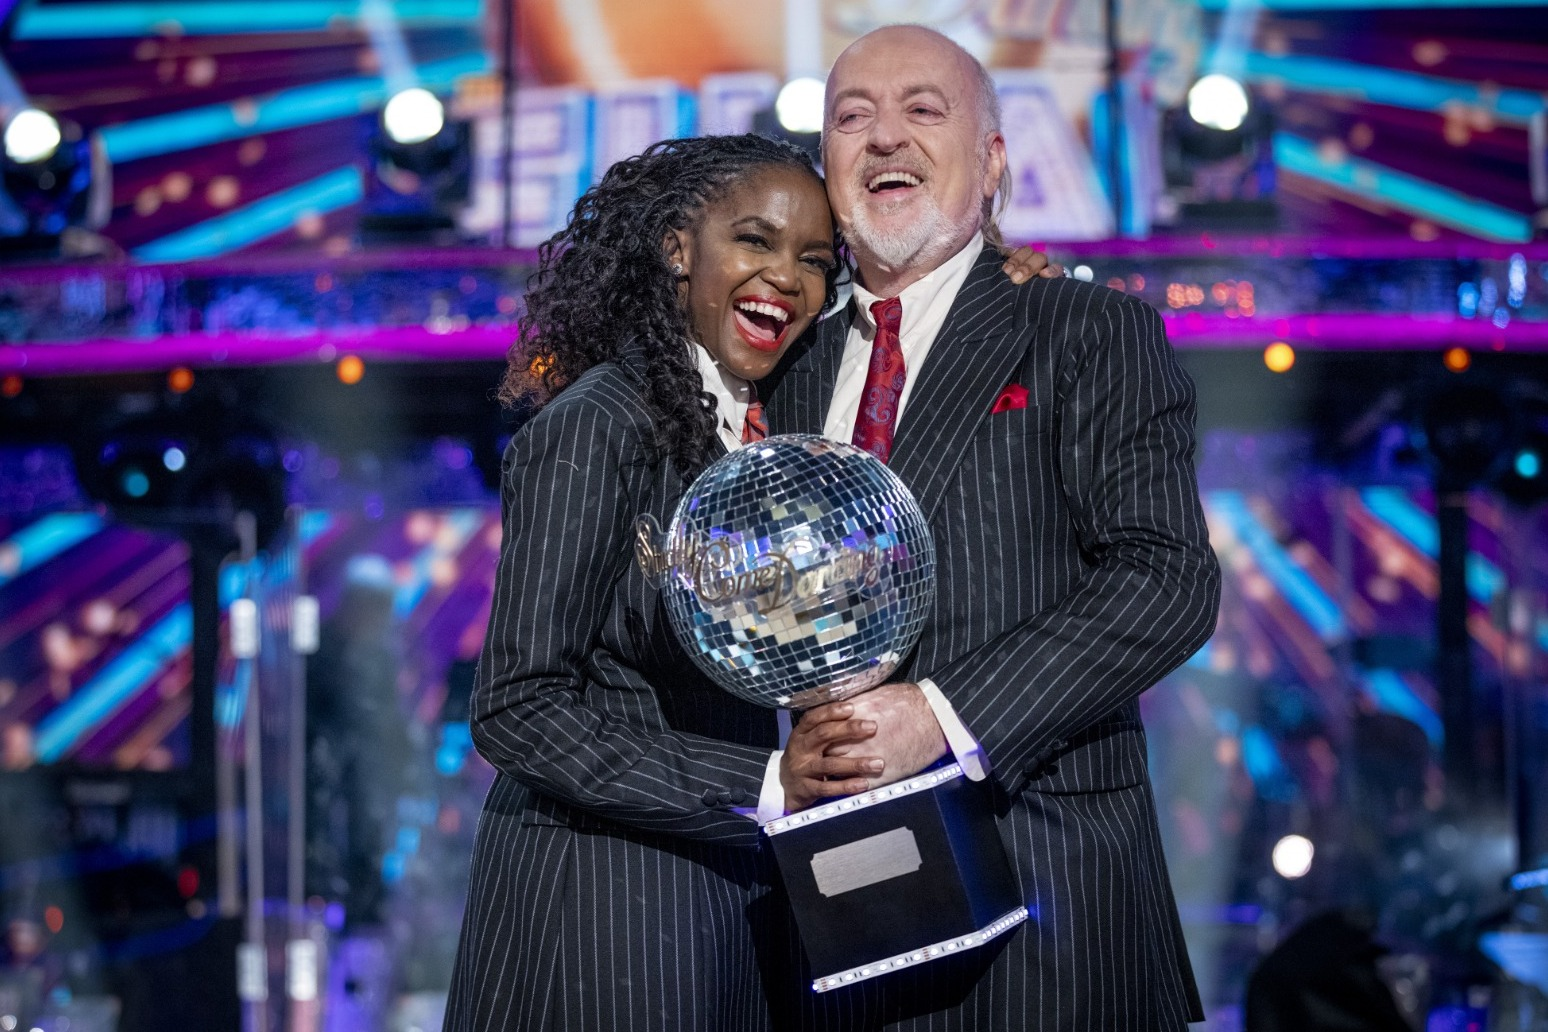 Bill Bailey throws hat in the ring for Eurovision 2022